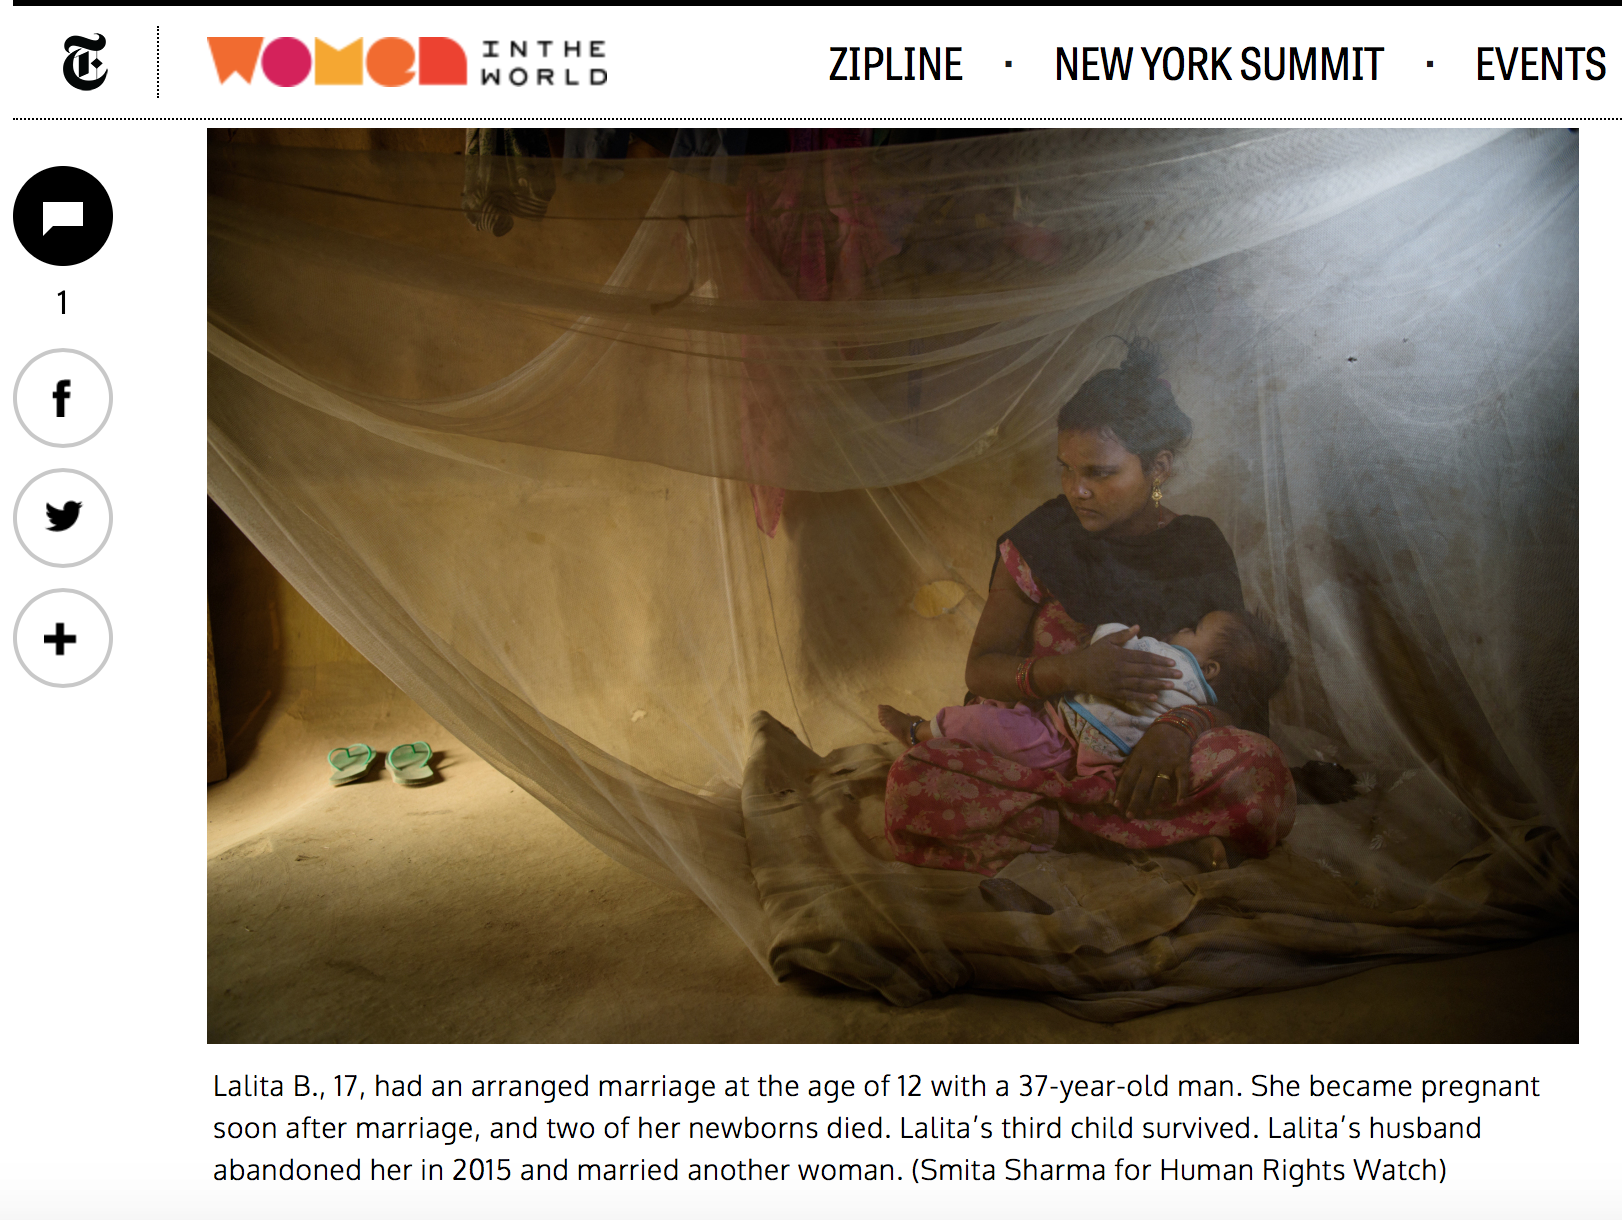 https://womenintheworld.com/2016/09/08/in-nepal-young-girls-are-being-married-off-simply-so-they-can-eat/